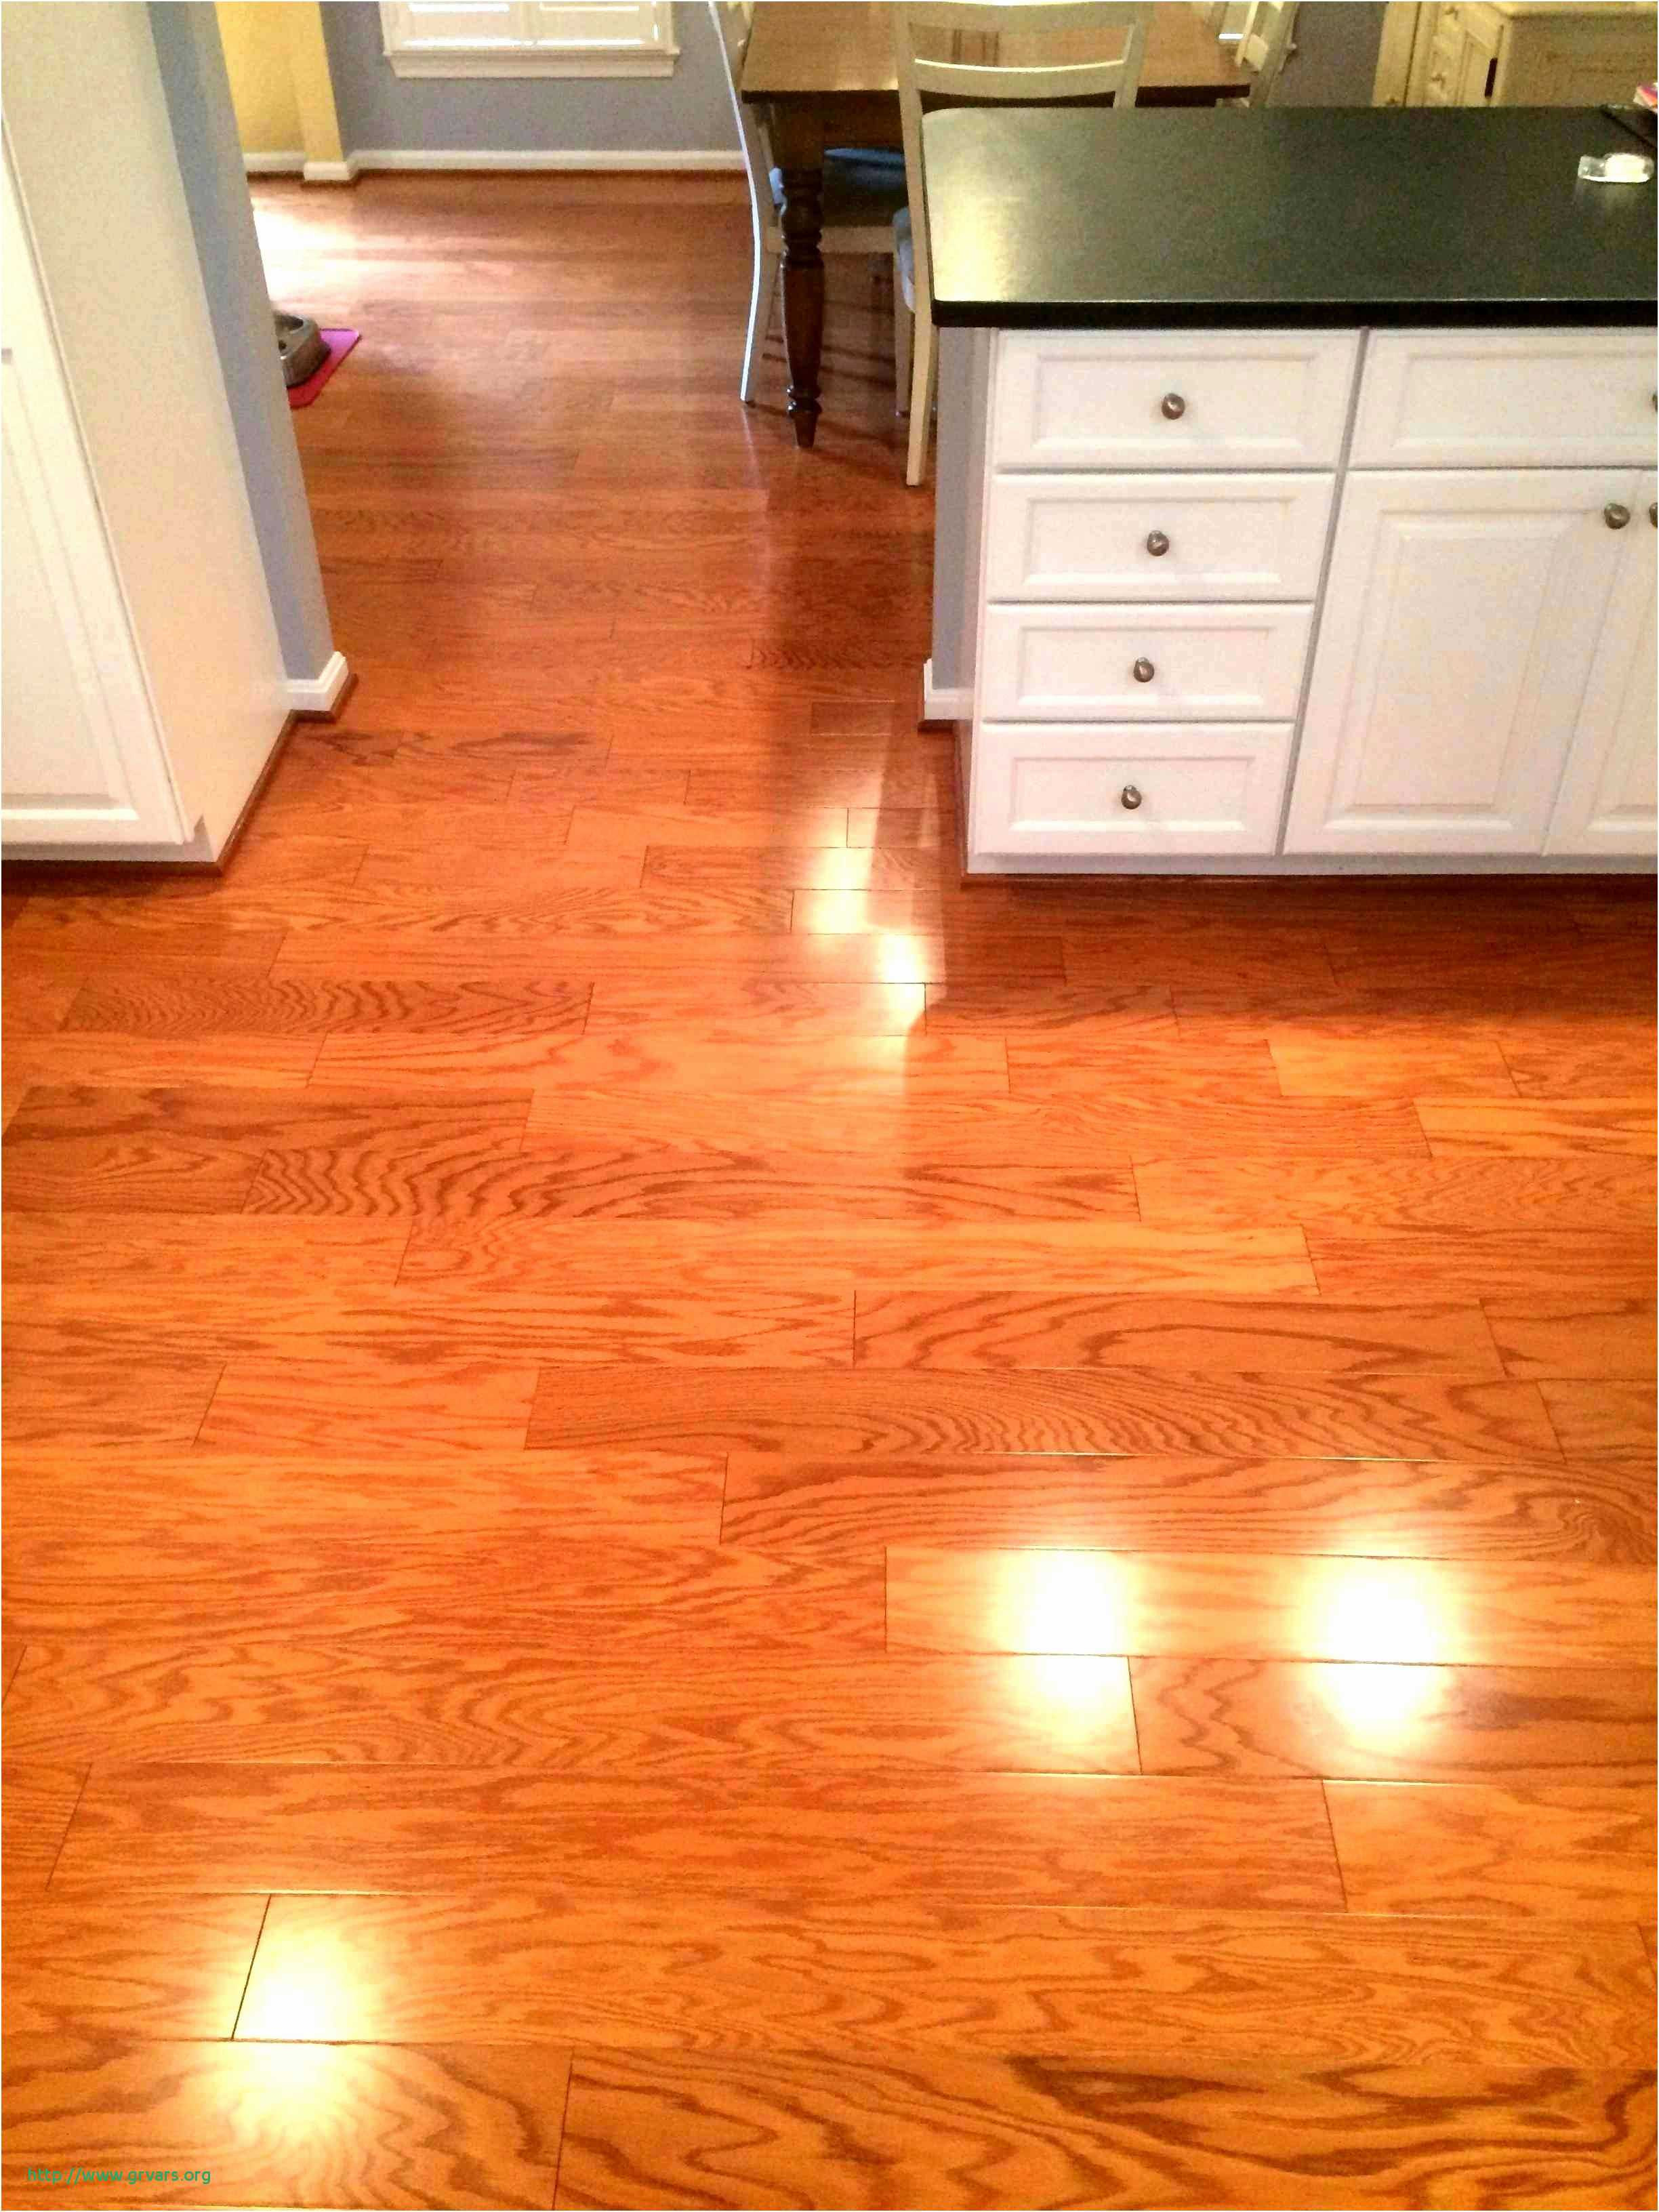 hardwood floors vs wood look tile of 16 charmant step by step hardwood floor installation ideas blog inside 16 photos of the 16 charmant step by step hardwood floor installation